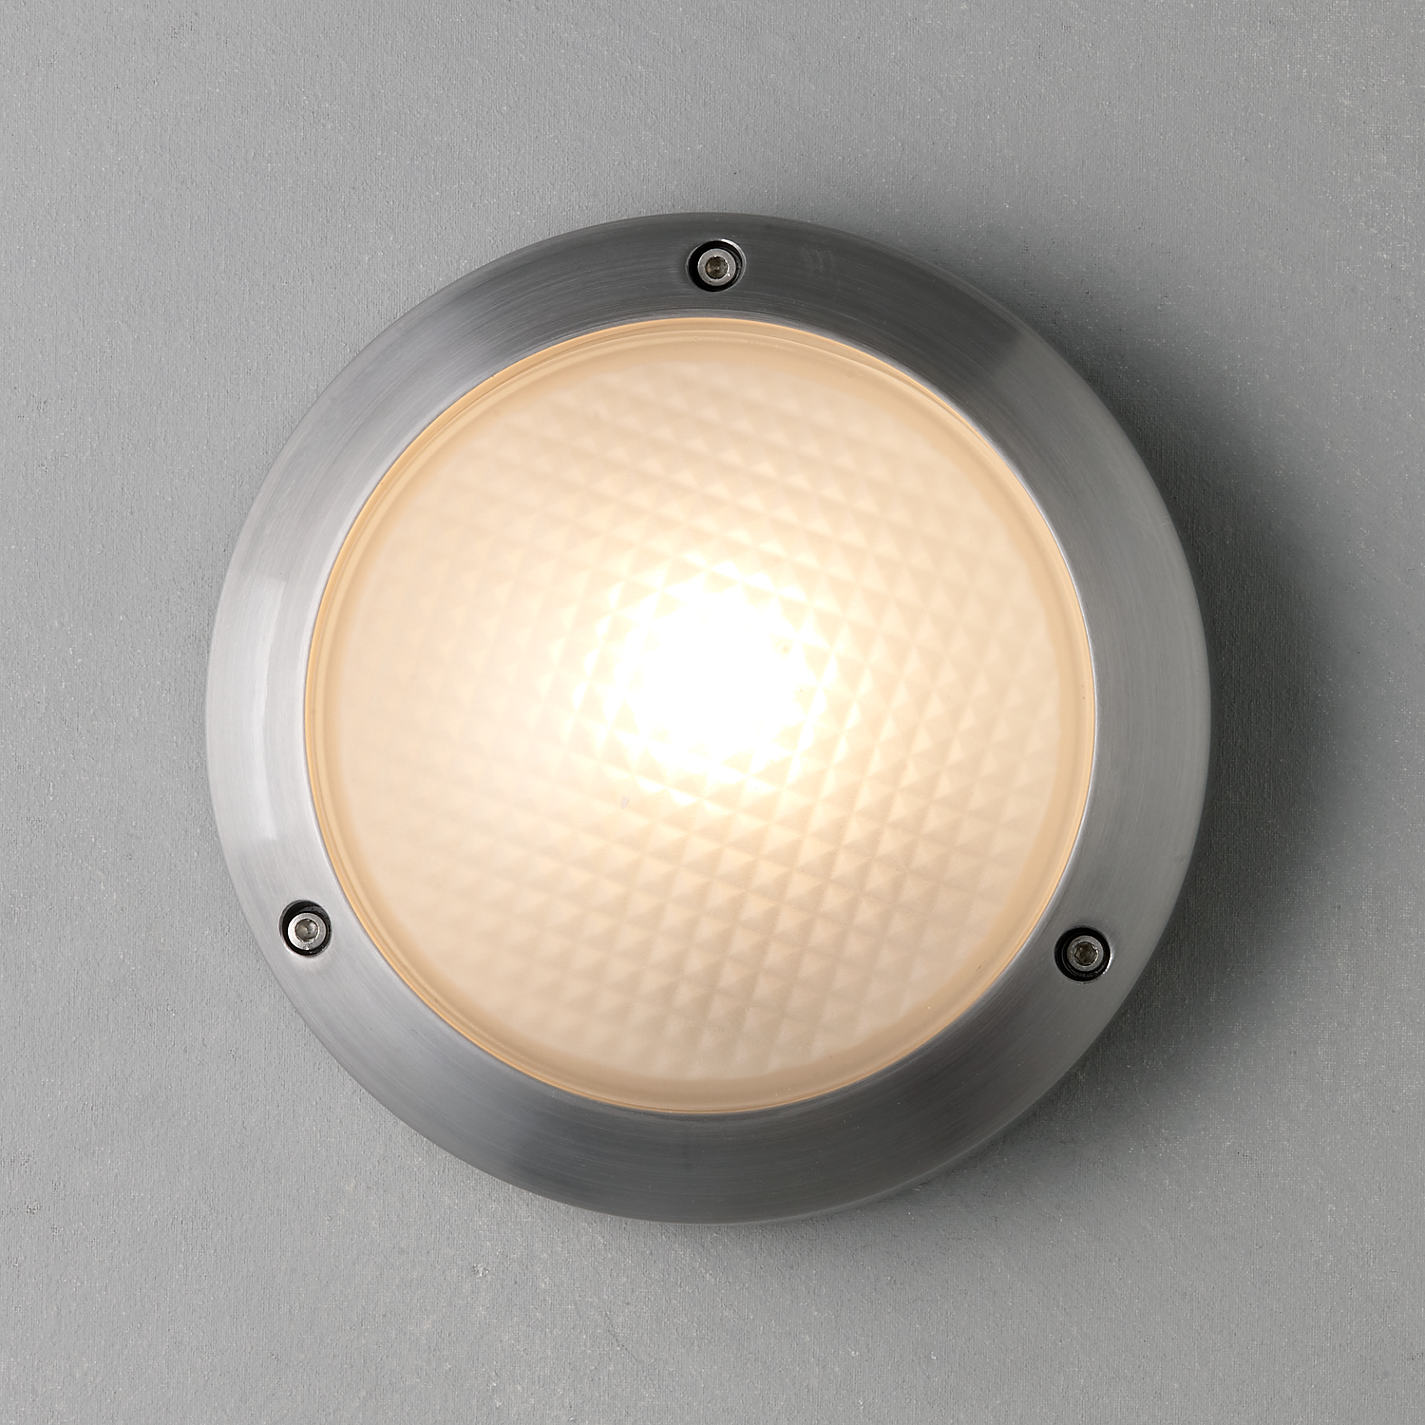 Buy astro toronto outdoor round wall light john lewis buy astro toronto outdoor round wall light online at johnlewis aloadofball Choice Image